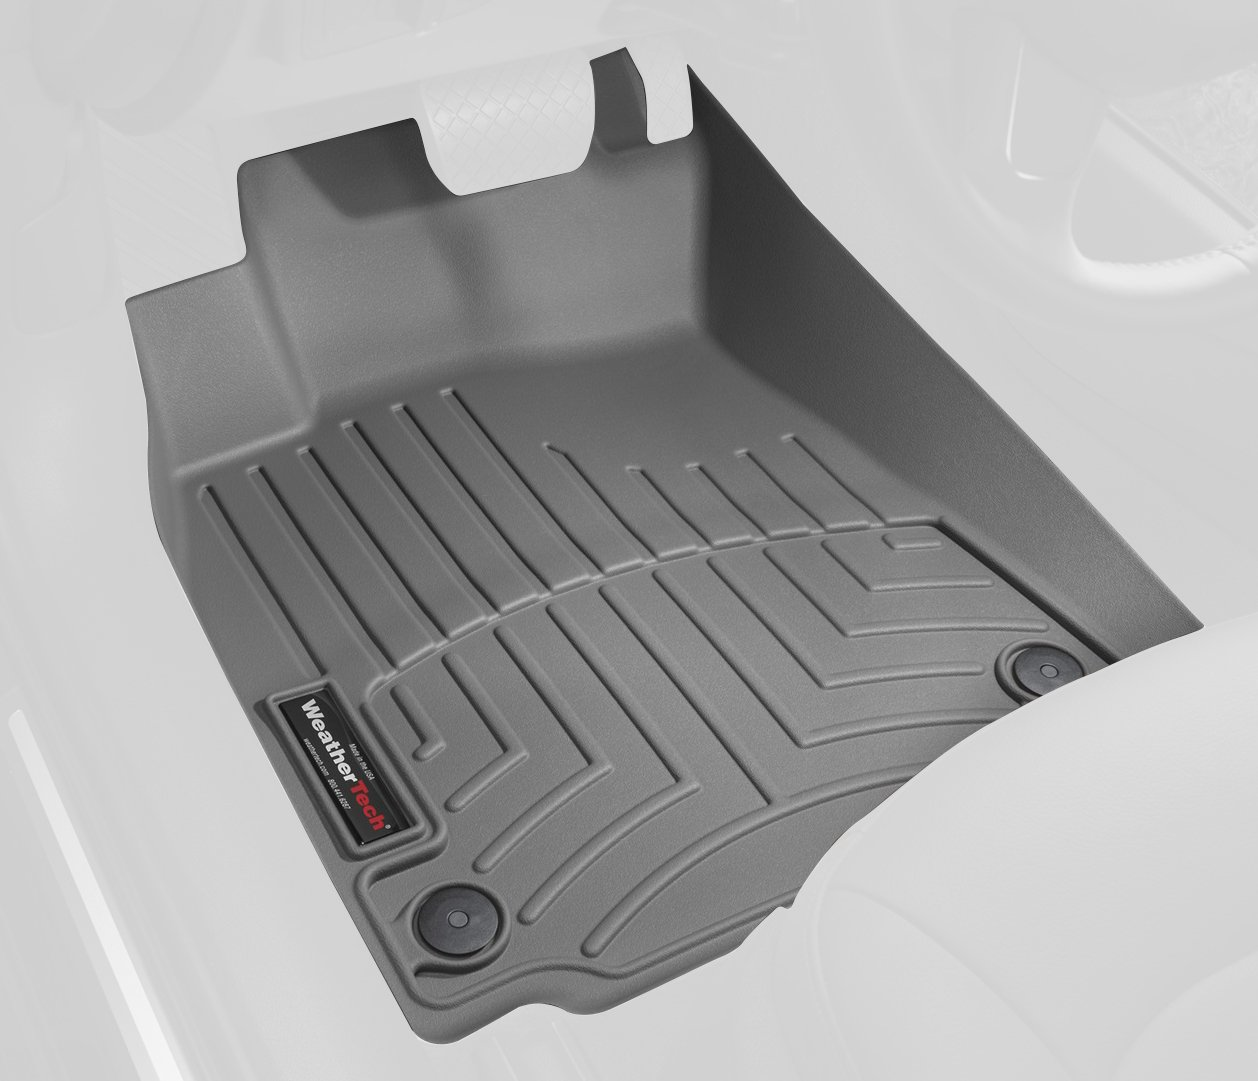 Weathertech extreme duty digitalfit floor liners best for Weathertech extreme duty digitalfit floor liners